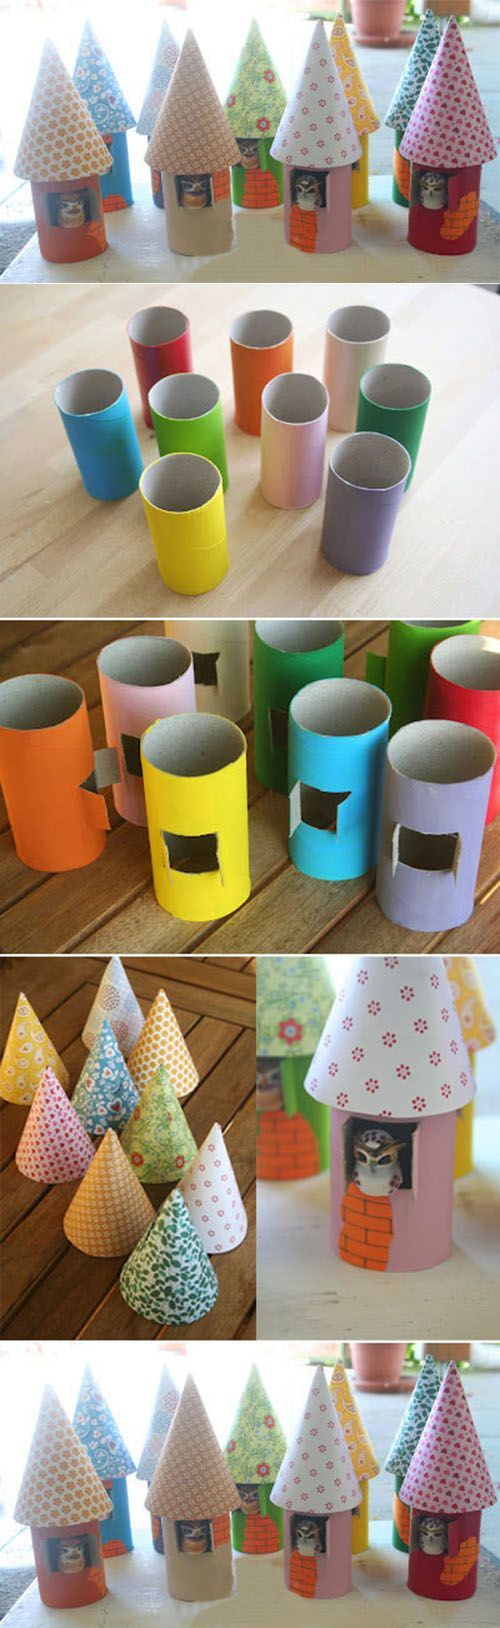 Cute Paper Craft | DIY & Crafts Tutorials/ casitas con tubos de cartón